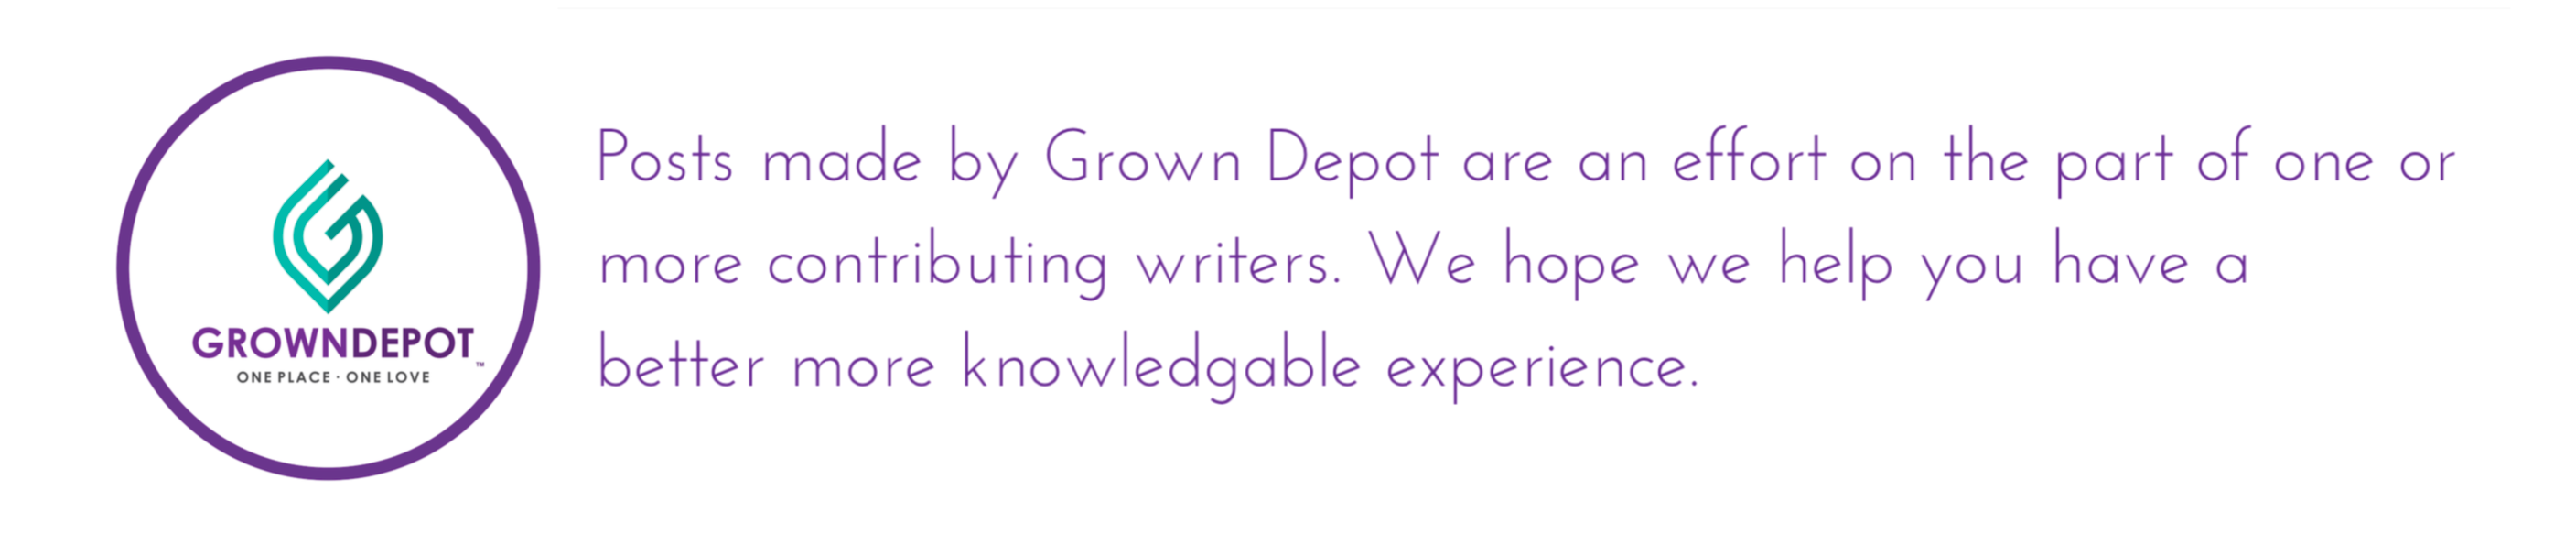 grown-depot-news-blogs-product-reviews-collective